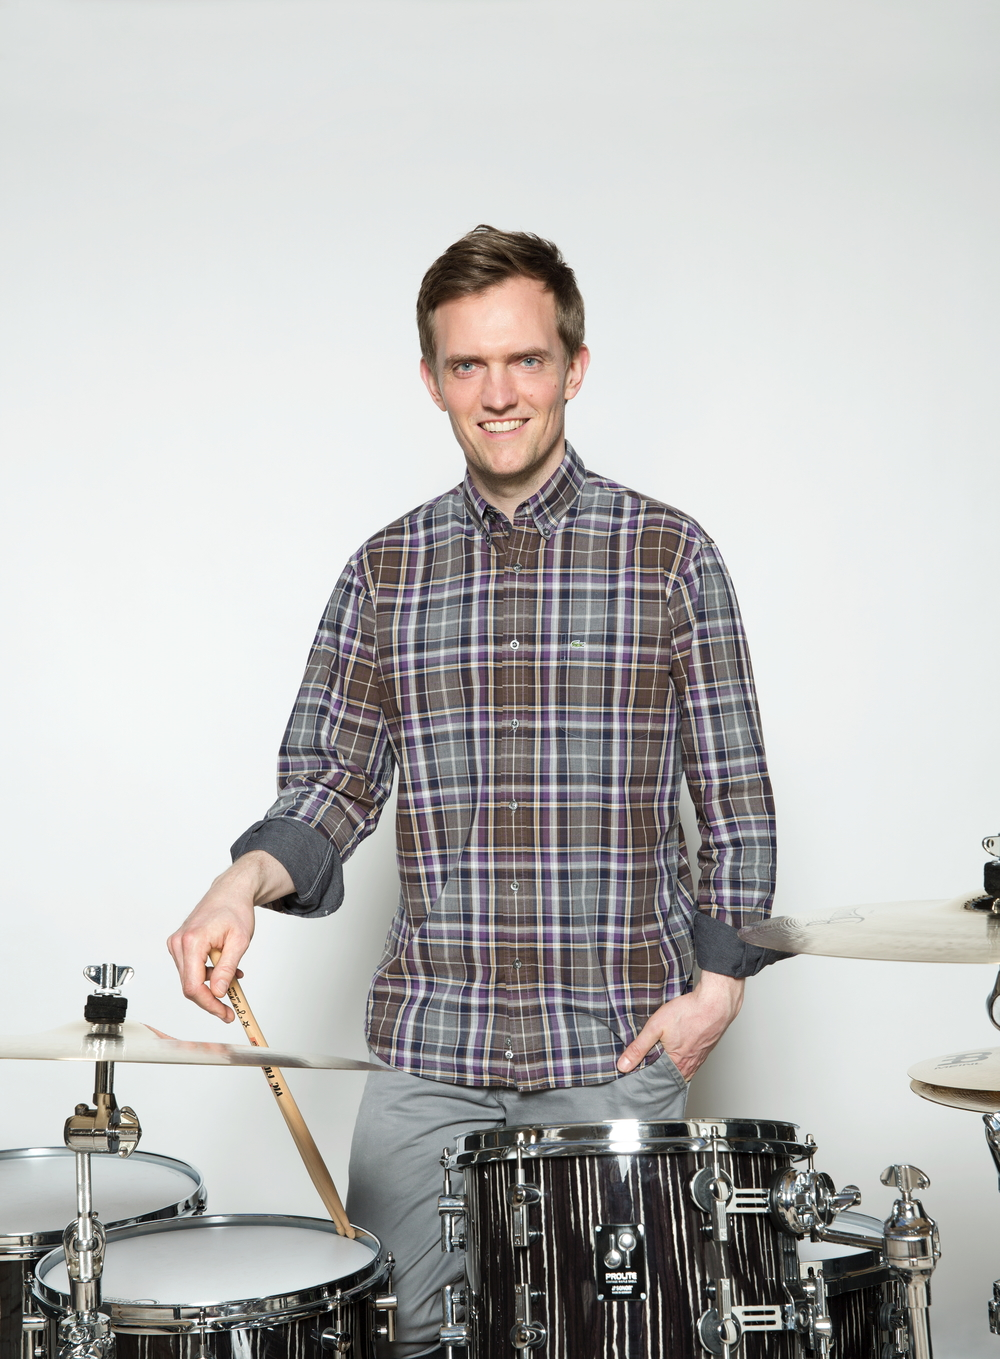 jost-nickel-drummer-jan-delay-sonor-vic-firth